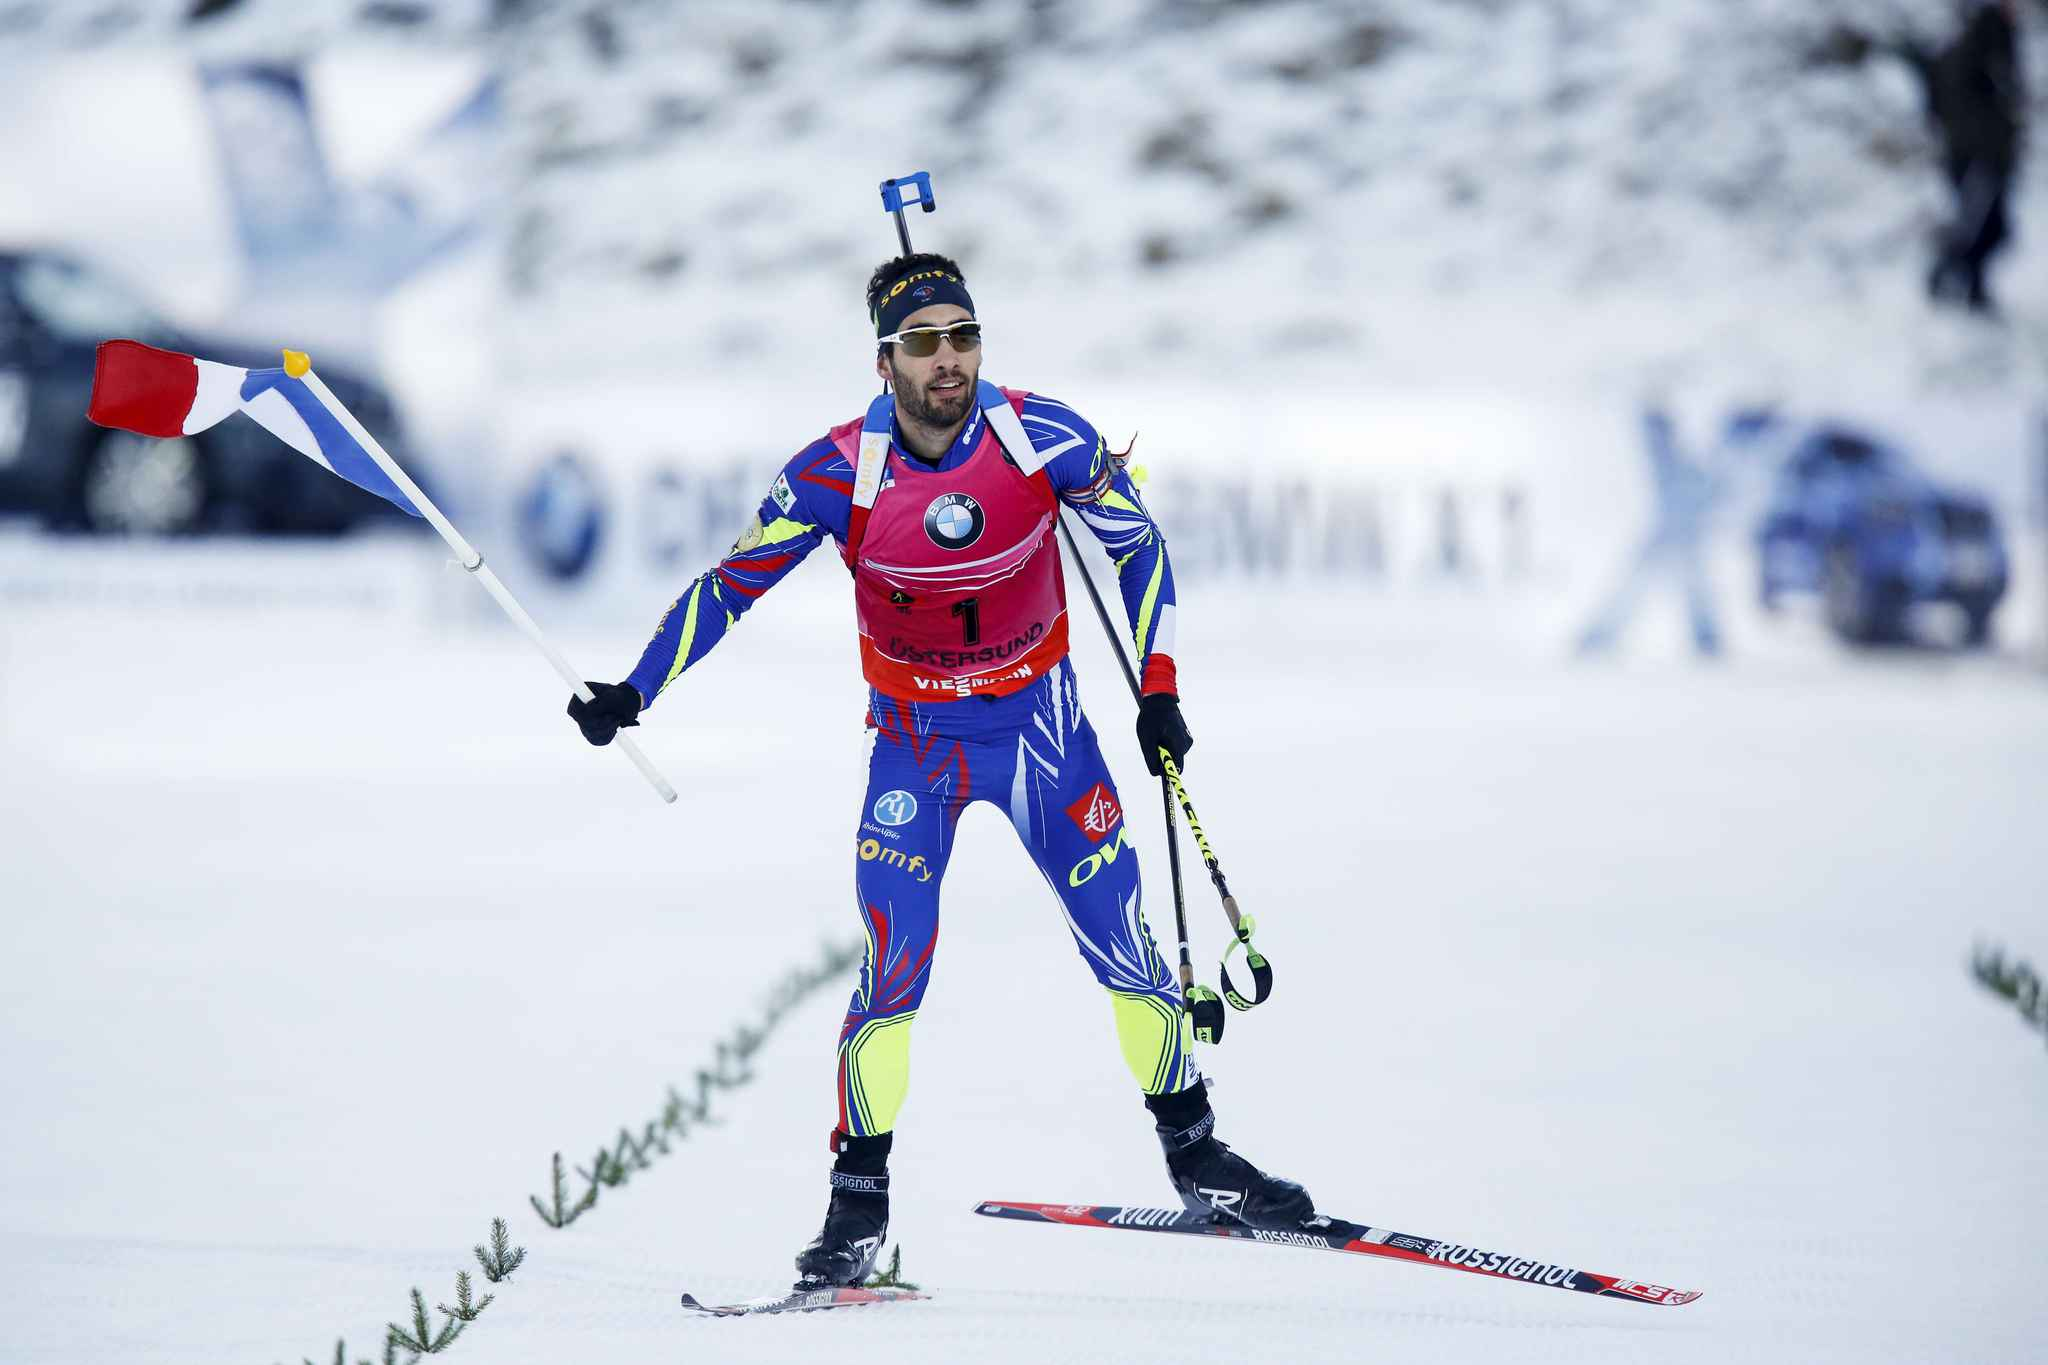 Biathlon Wallpapers Wallpapers High Quality